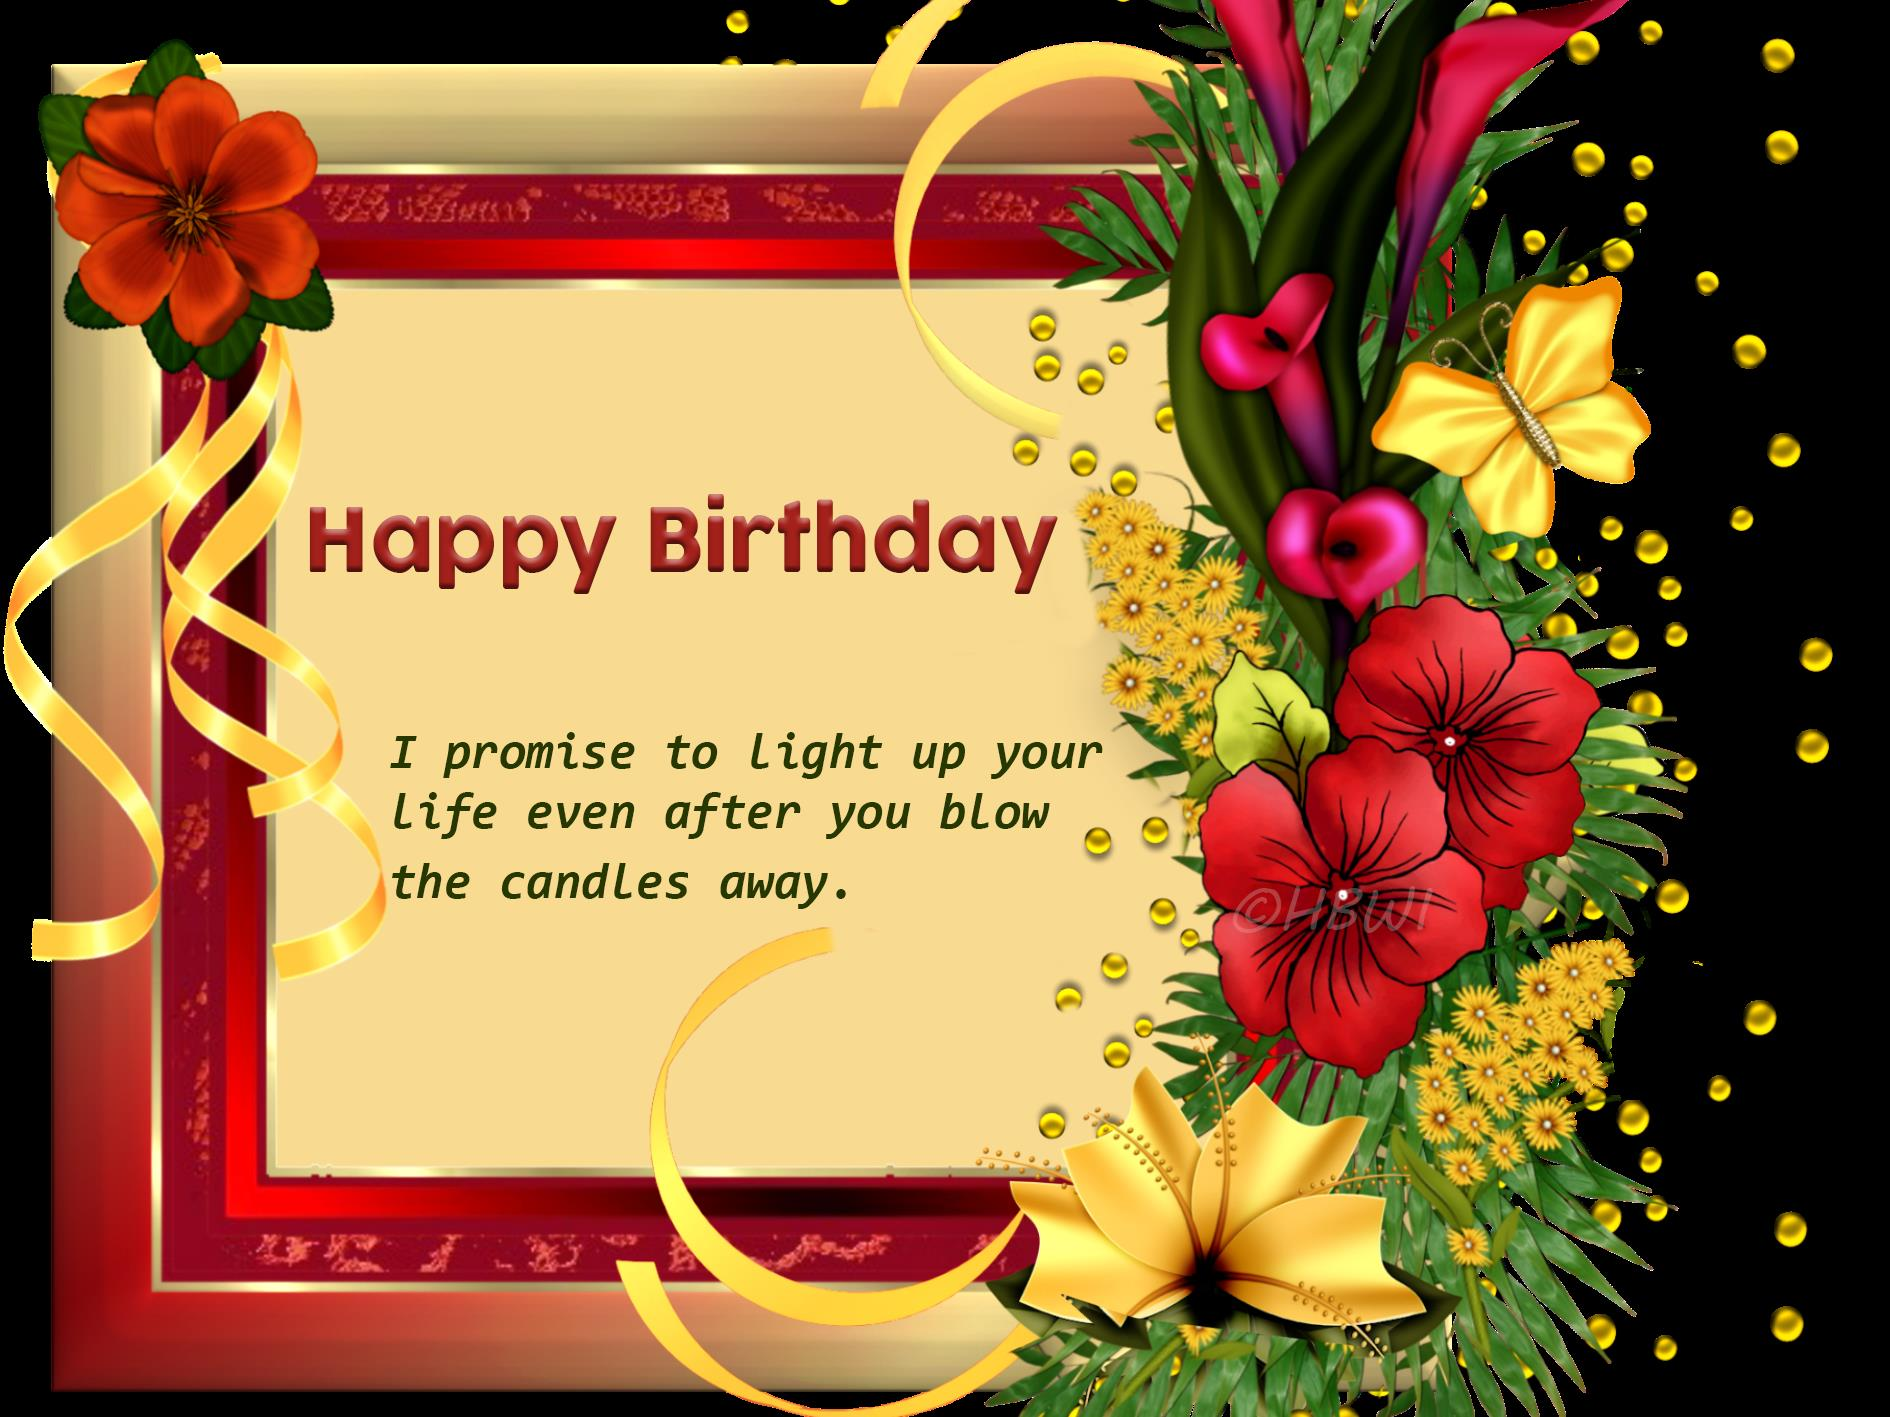 happy birthday full hd images ; exclusive-Happy-birthday-wishes-cards-with-flowers